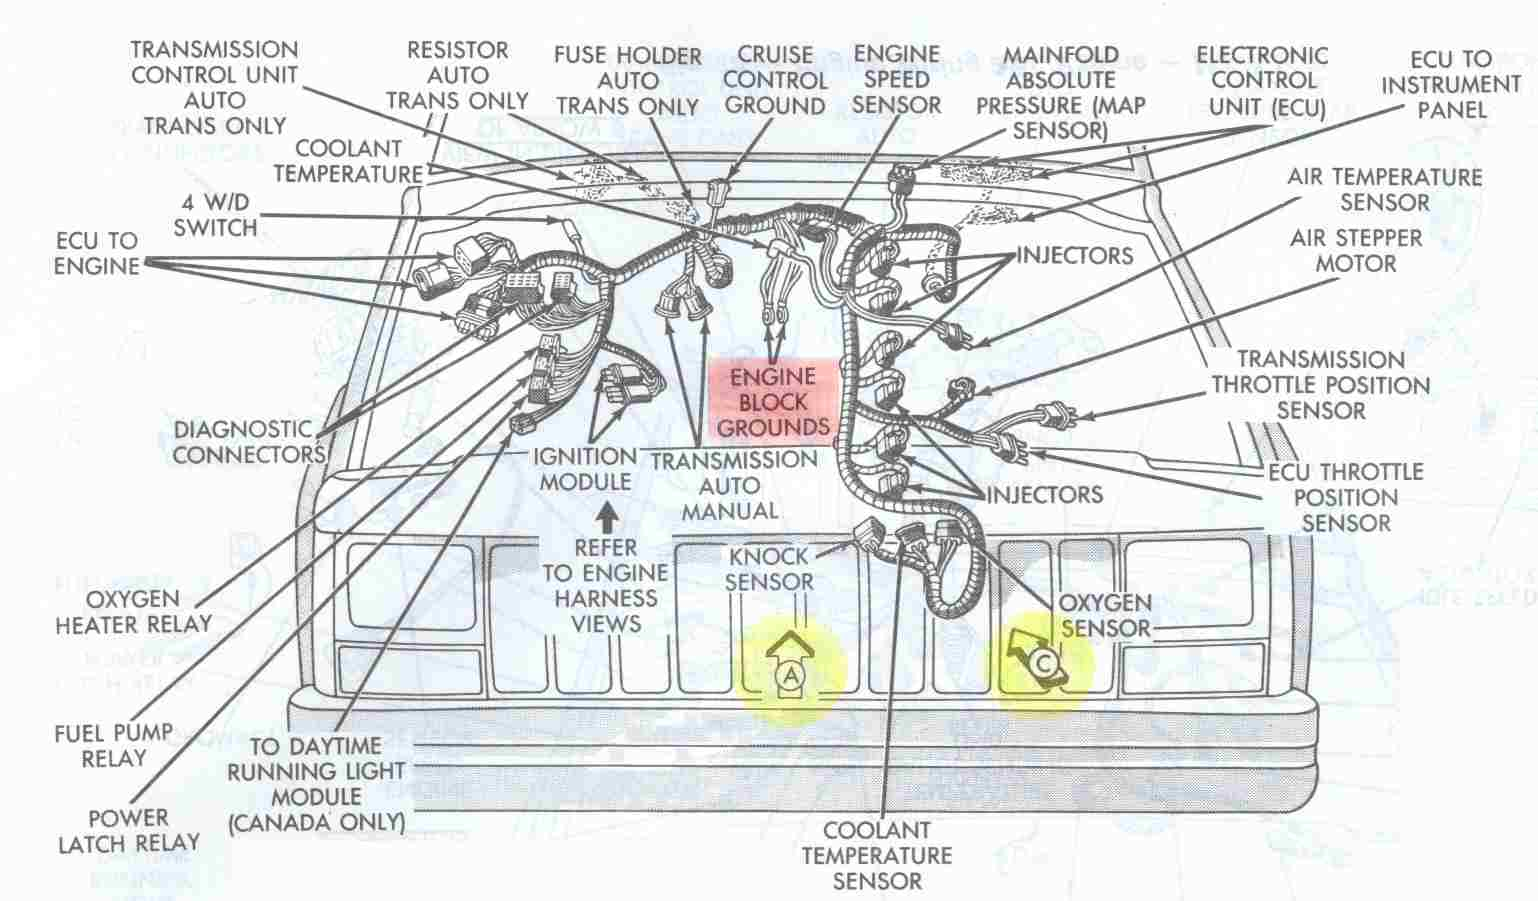 magnavox remote diagram all about repair and wiring collections magnavox remote diagram jeep xj wiring harness jeep wiring diagrams electrical engine ground points overview